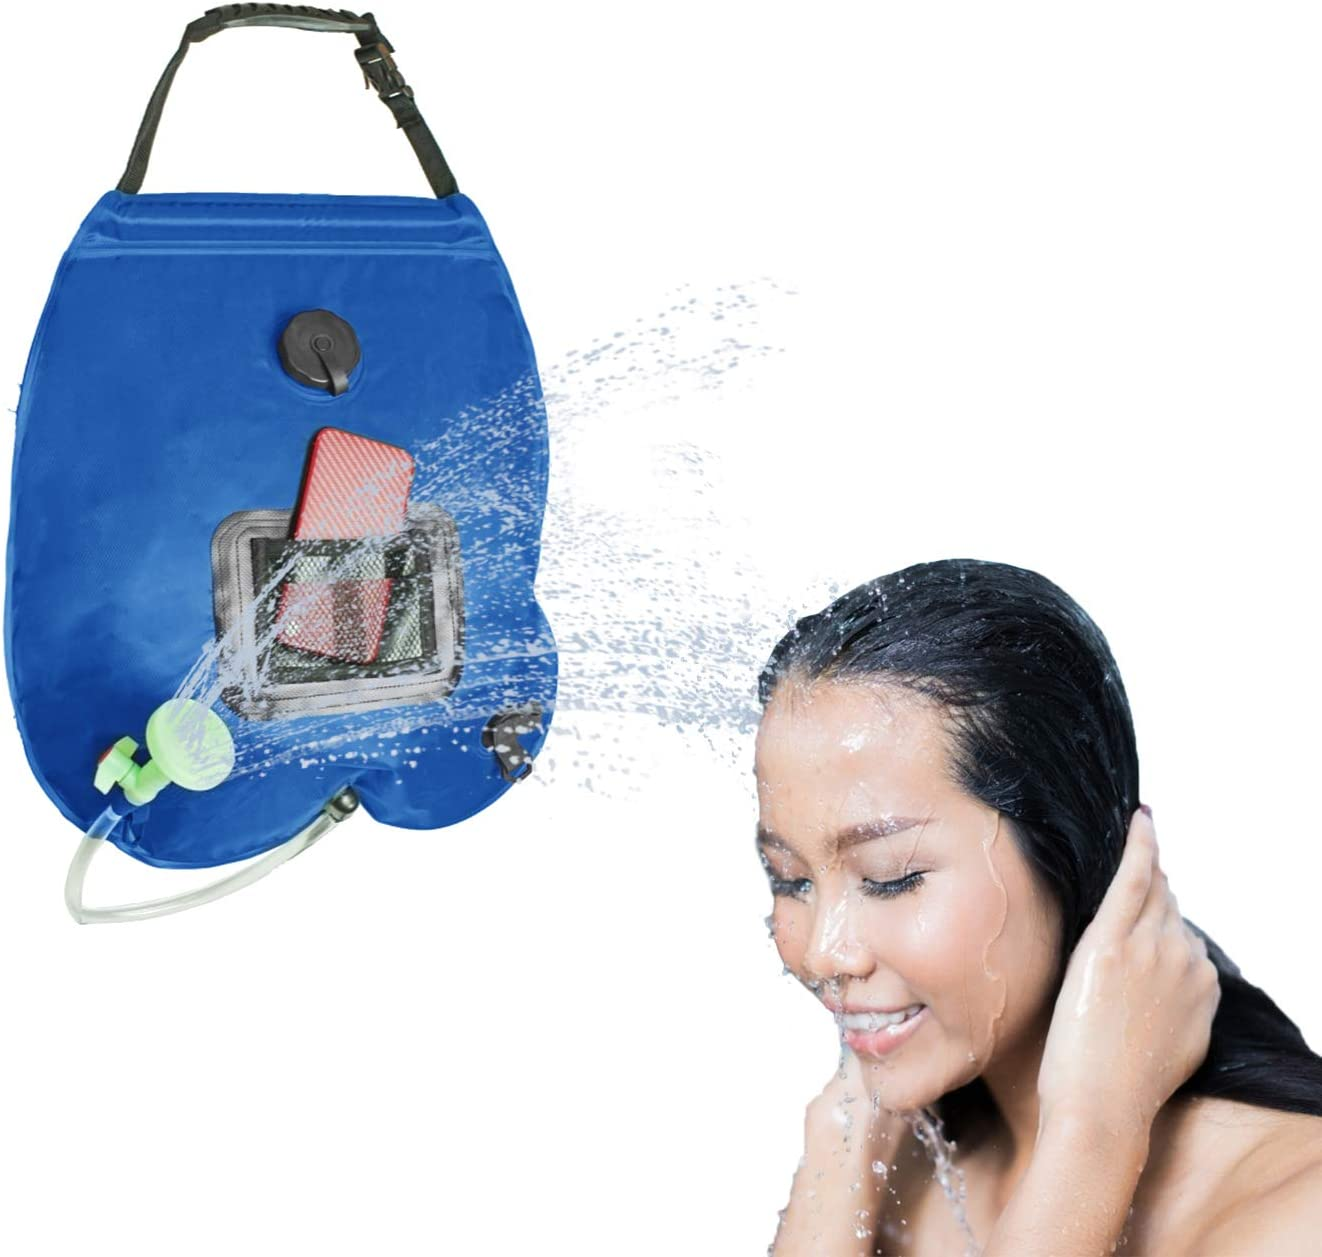 XUNXING Outdoor Max 71% OFF Traveling Portable Solar trend rank Bag Camp Shower